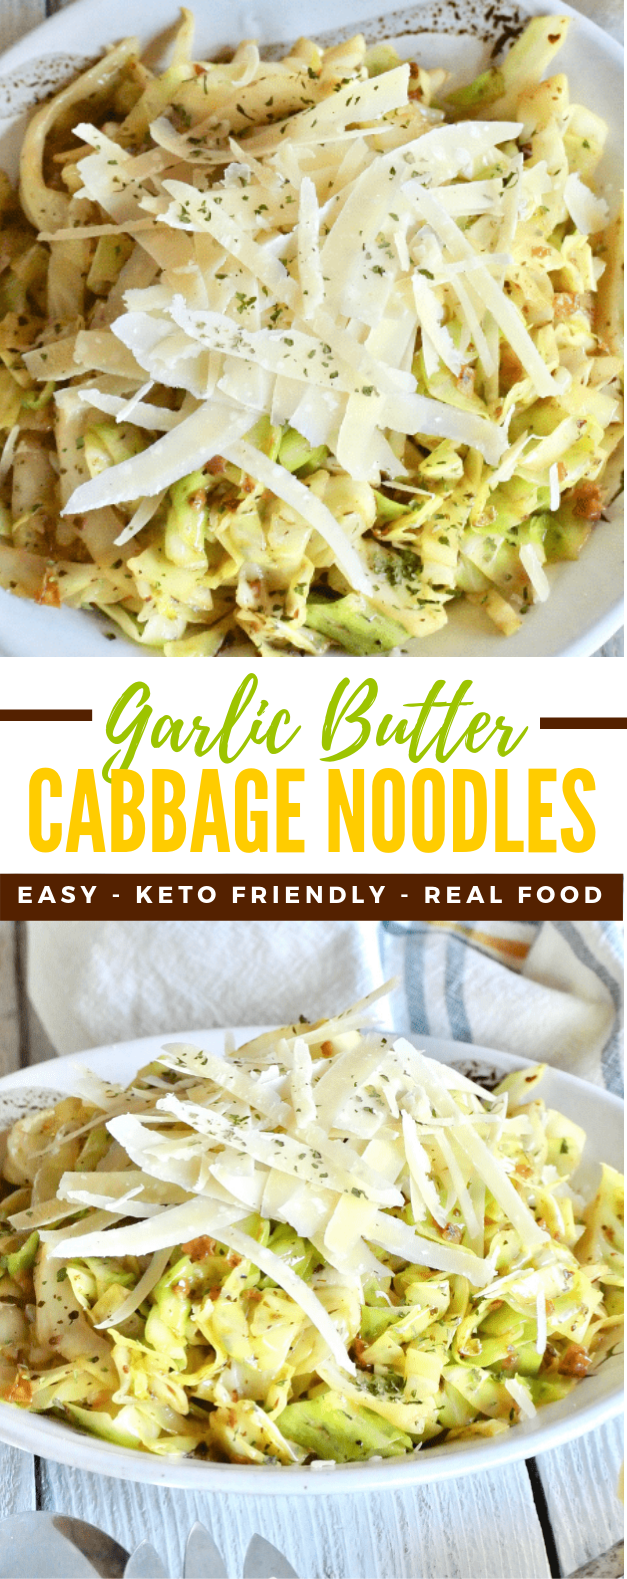 Easy Garlic Butter Cabbage Noodles #keto #healthy